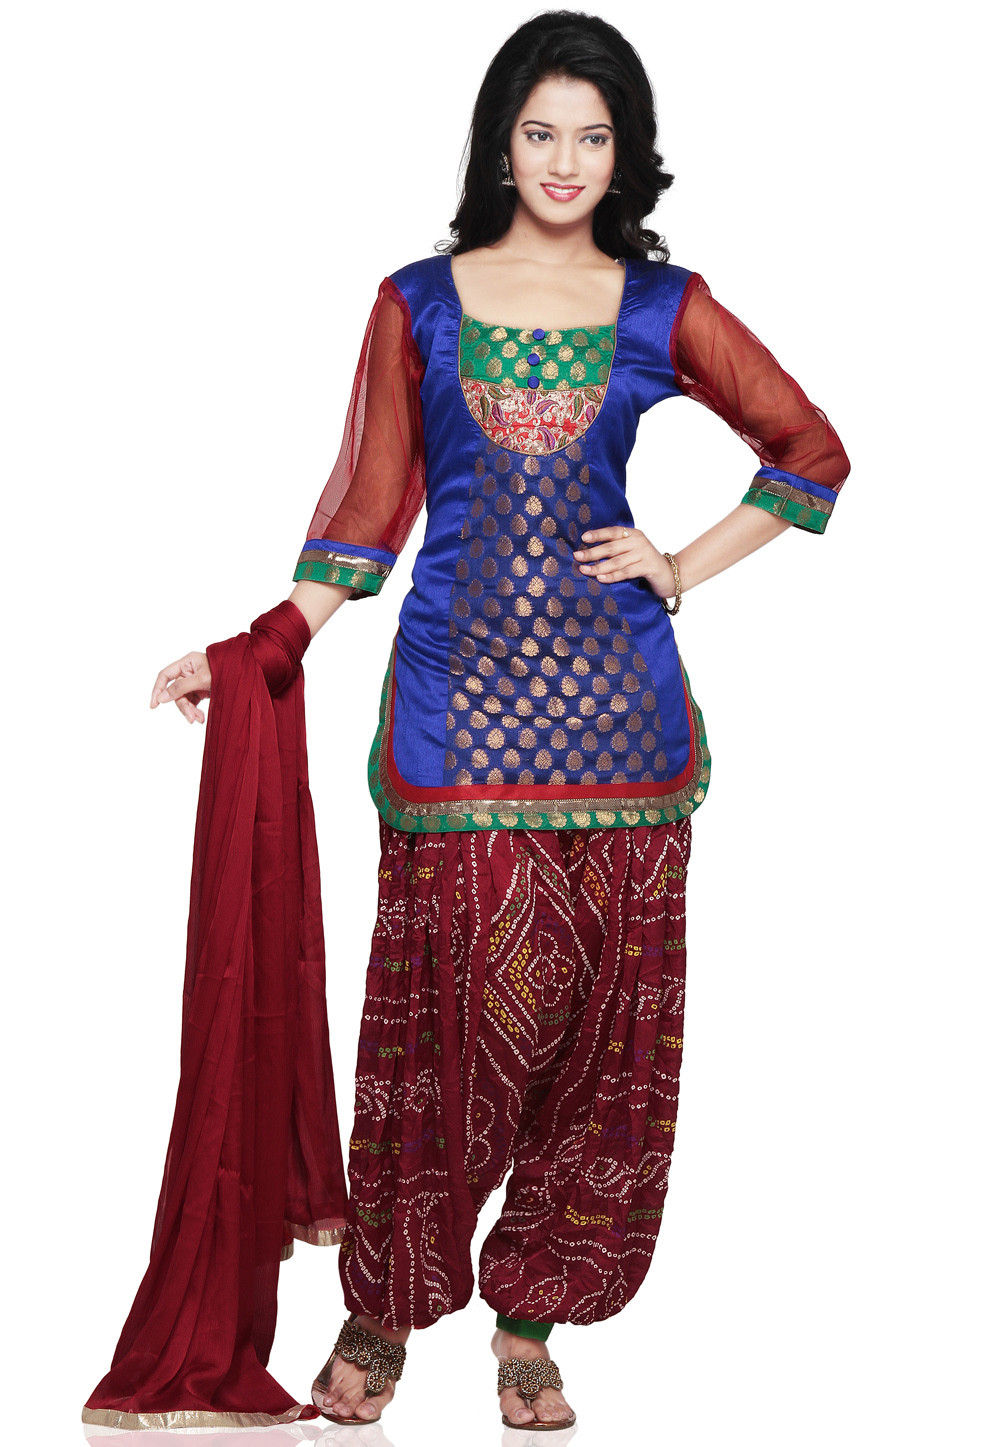 Chanderi and Dupion Silk Punjabi Suit in Royal Blue